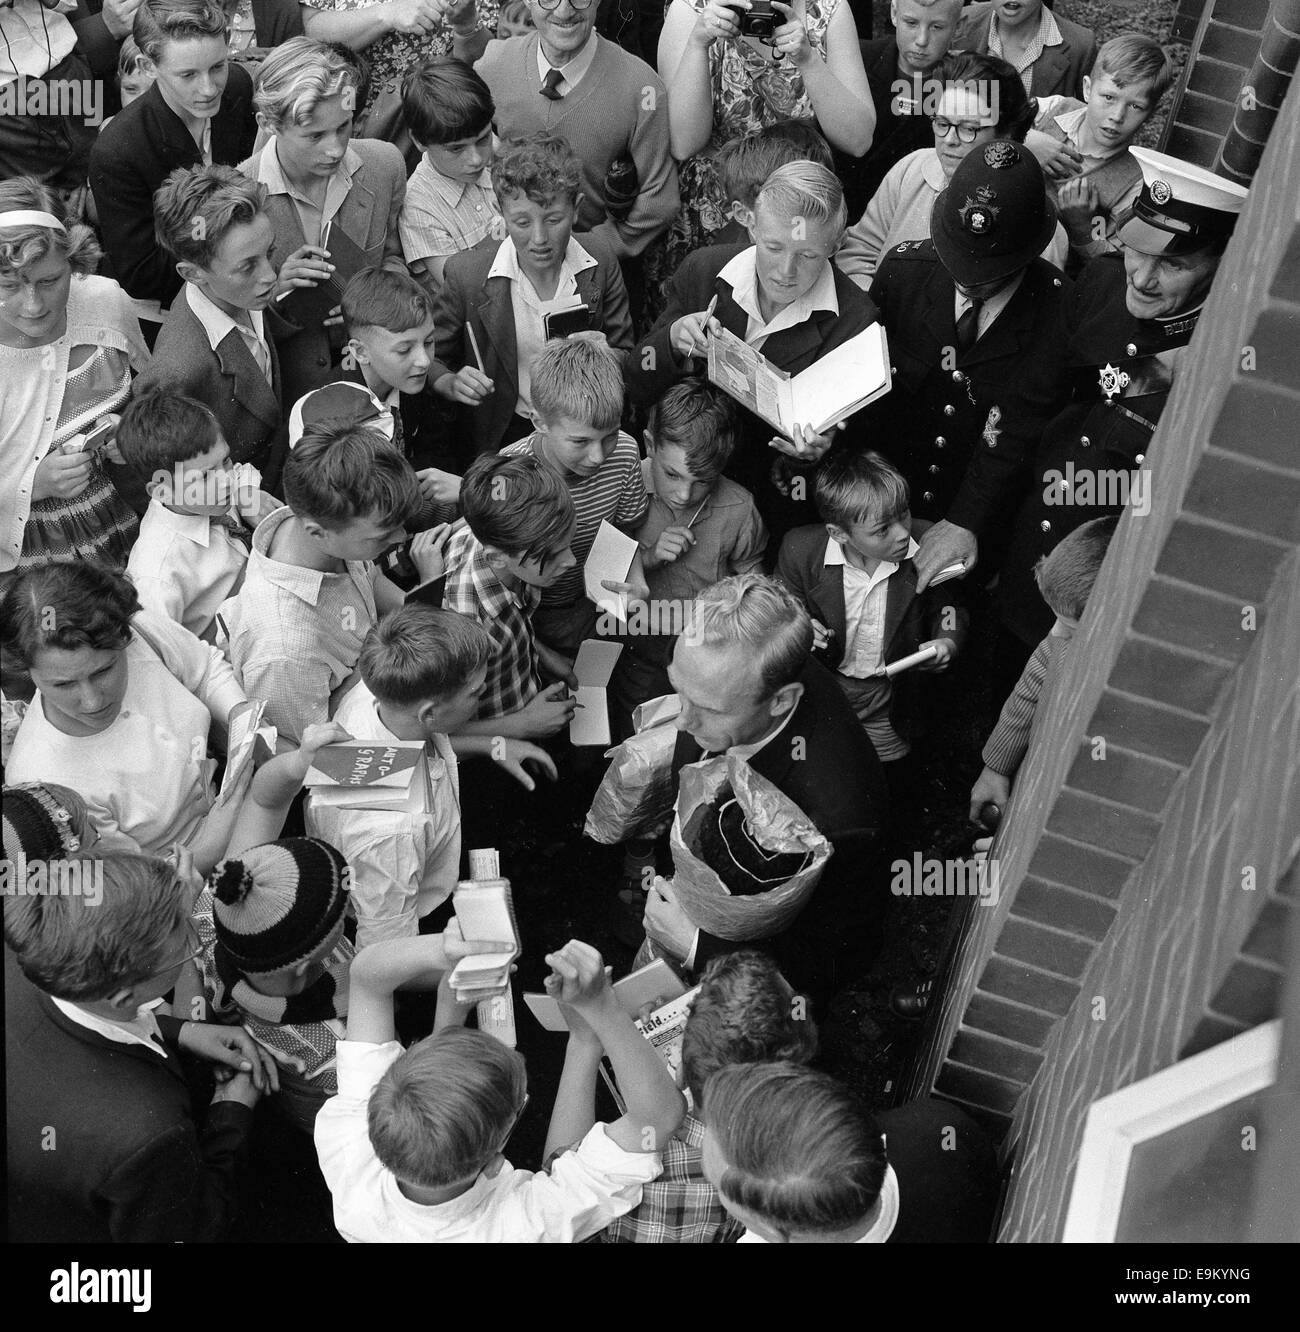 Football fans autograph hunters children crowd around Billy Wright after his final match at Molineux August 8th - Stock Image